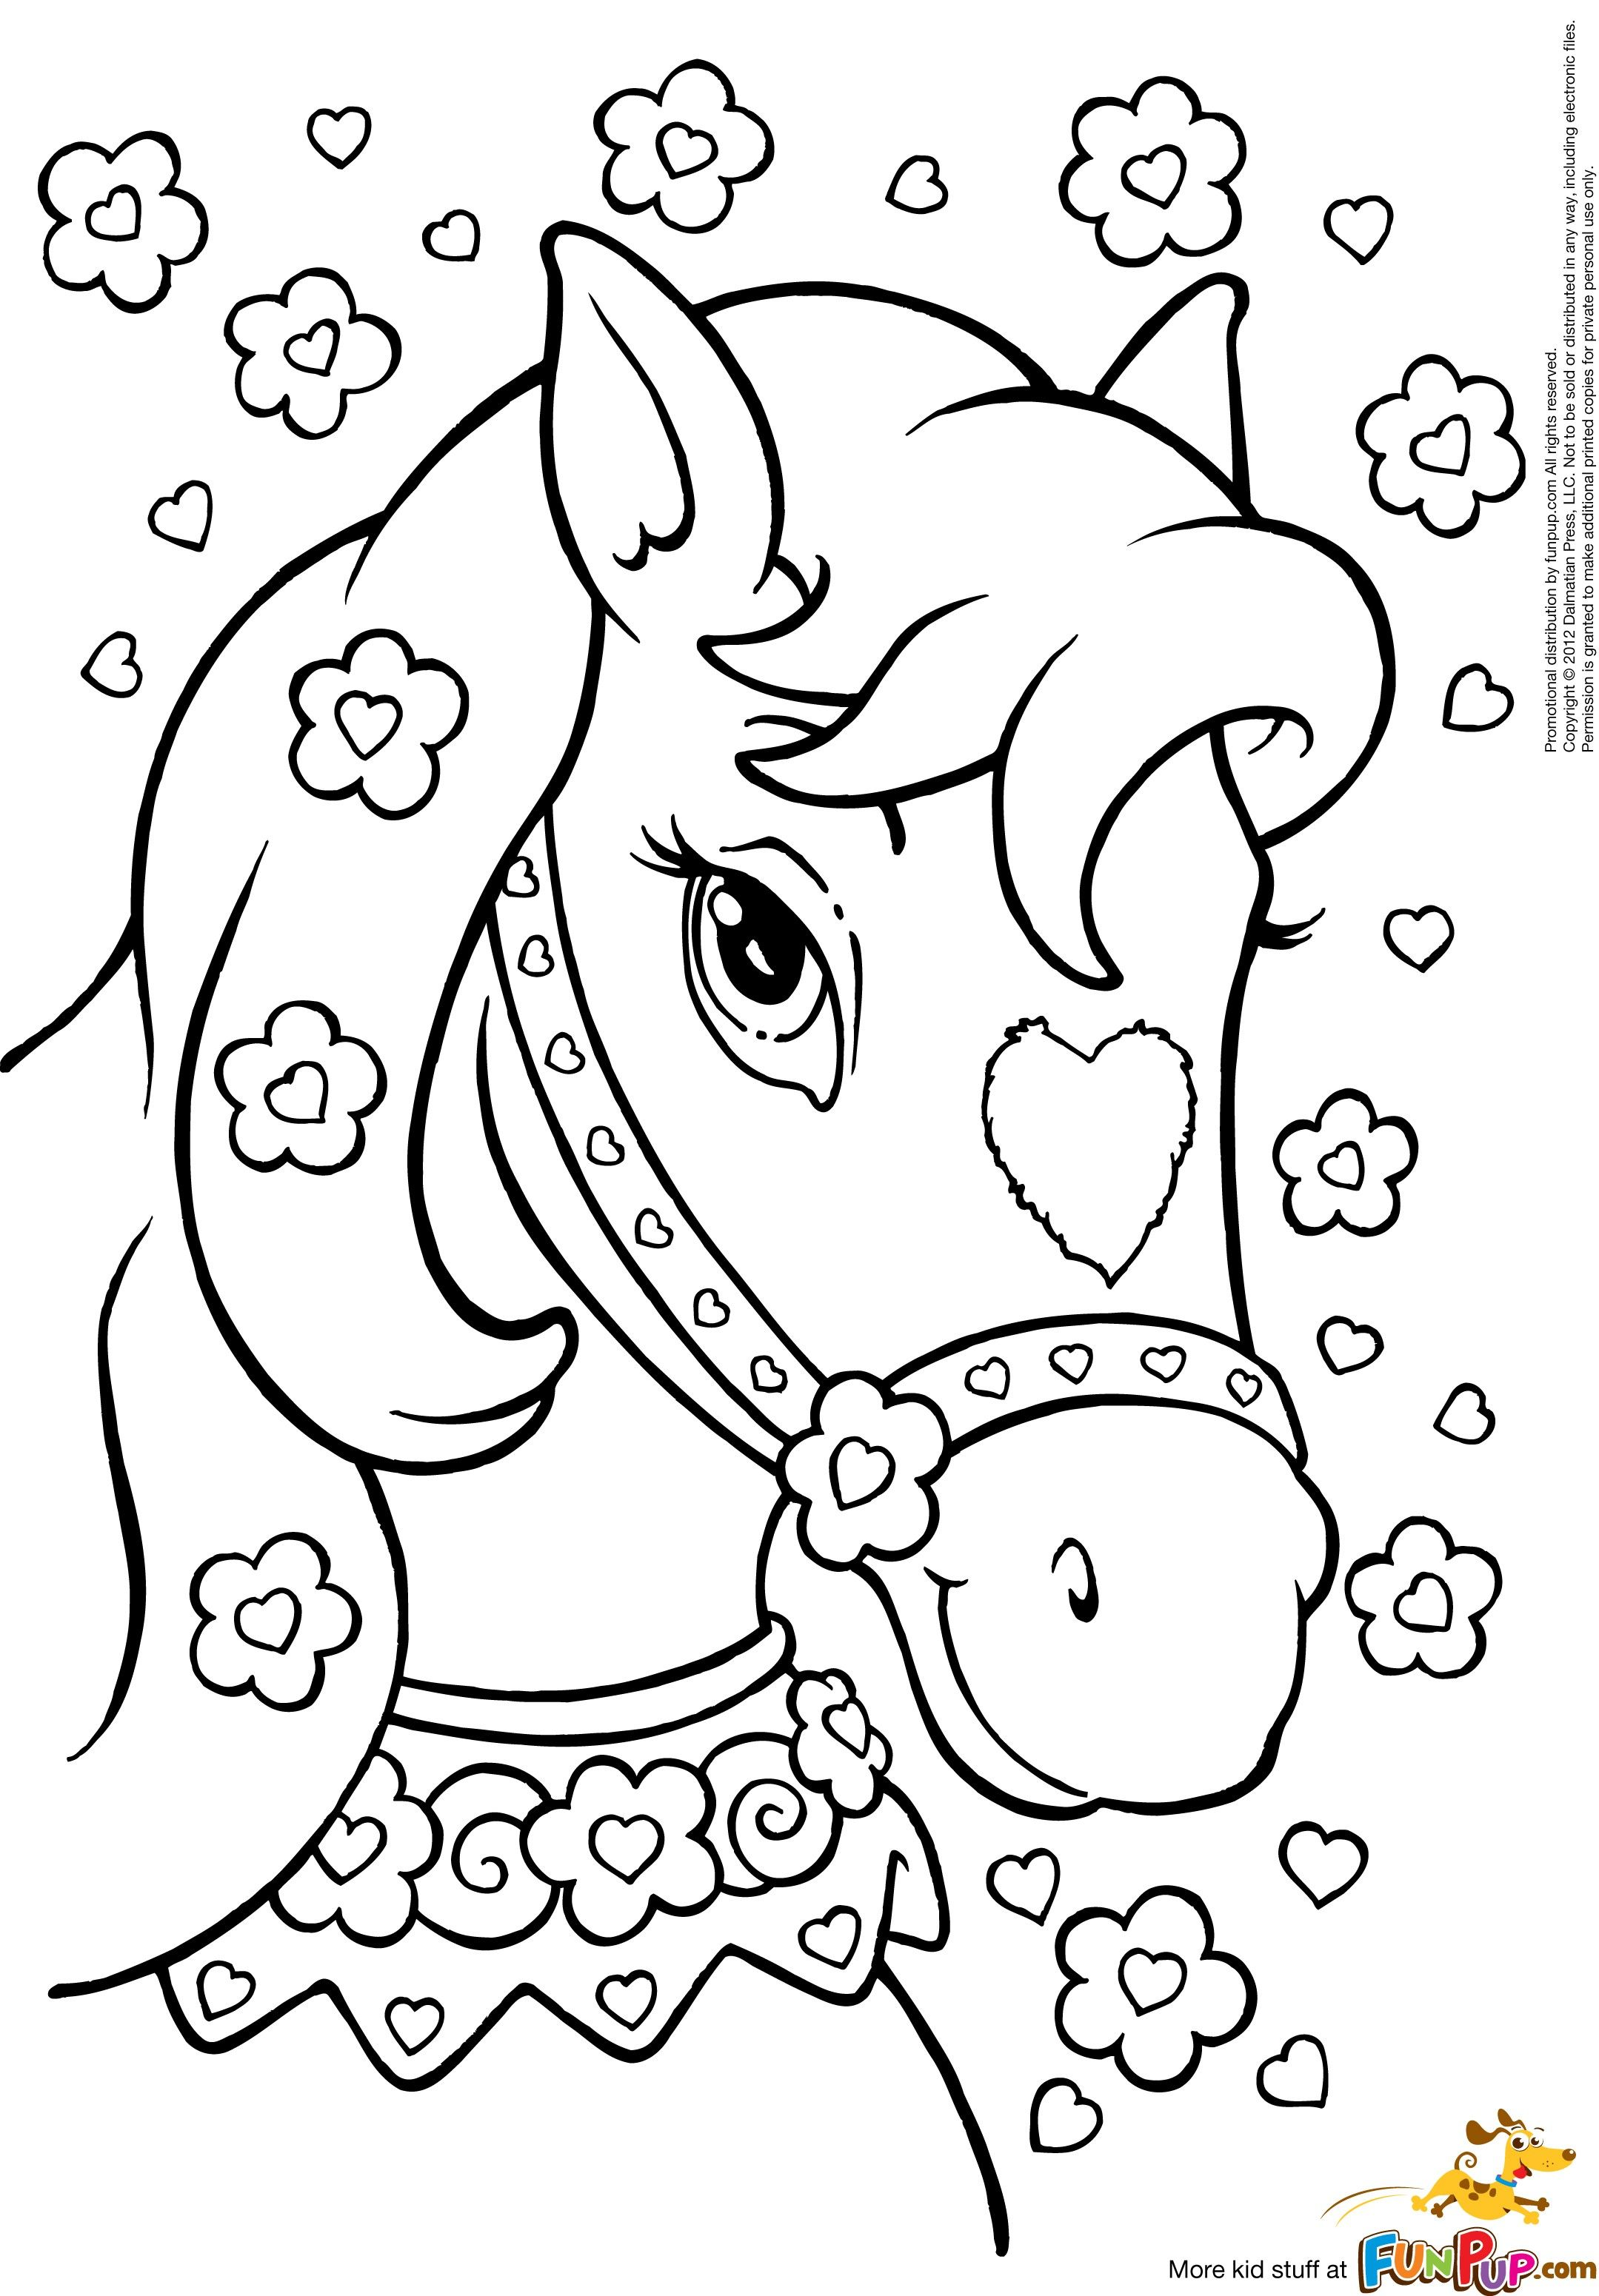 Princess coloring pages images